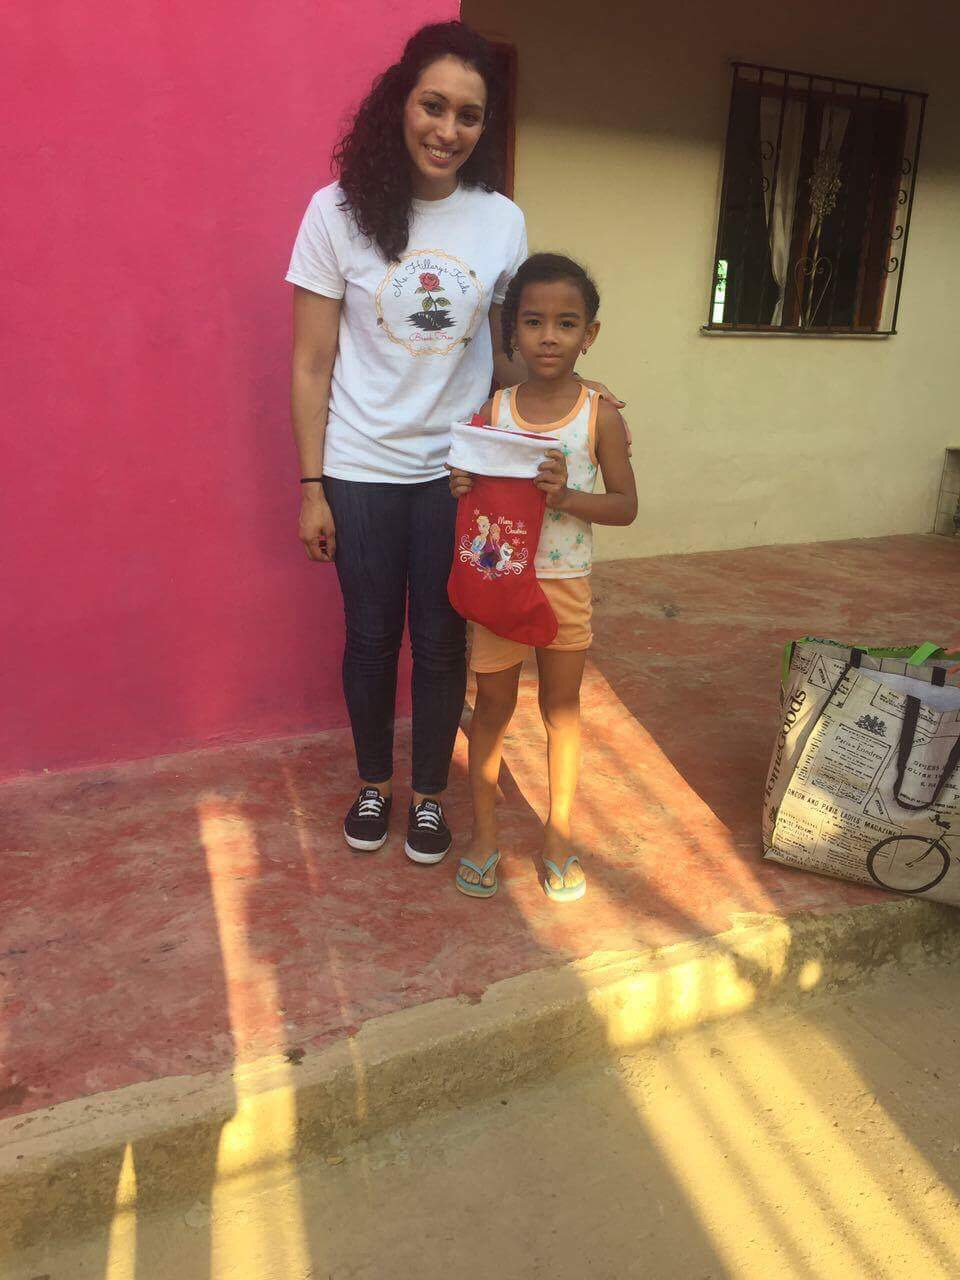 Mentee Arleen giving back in Colombia 4